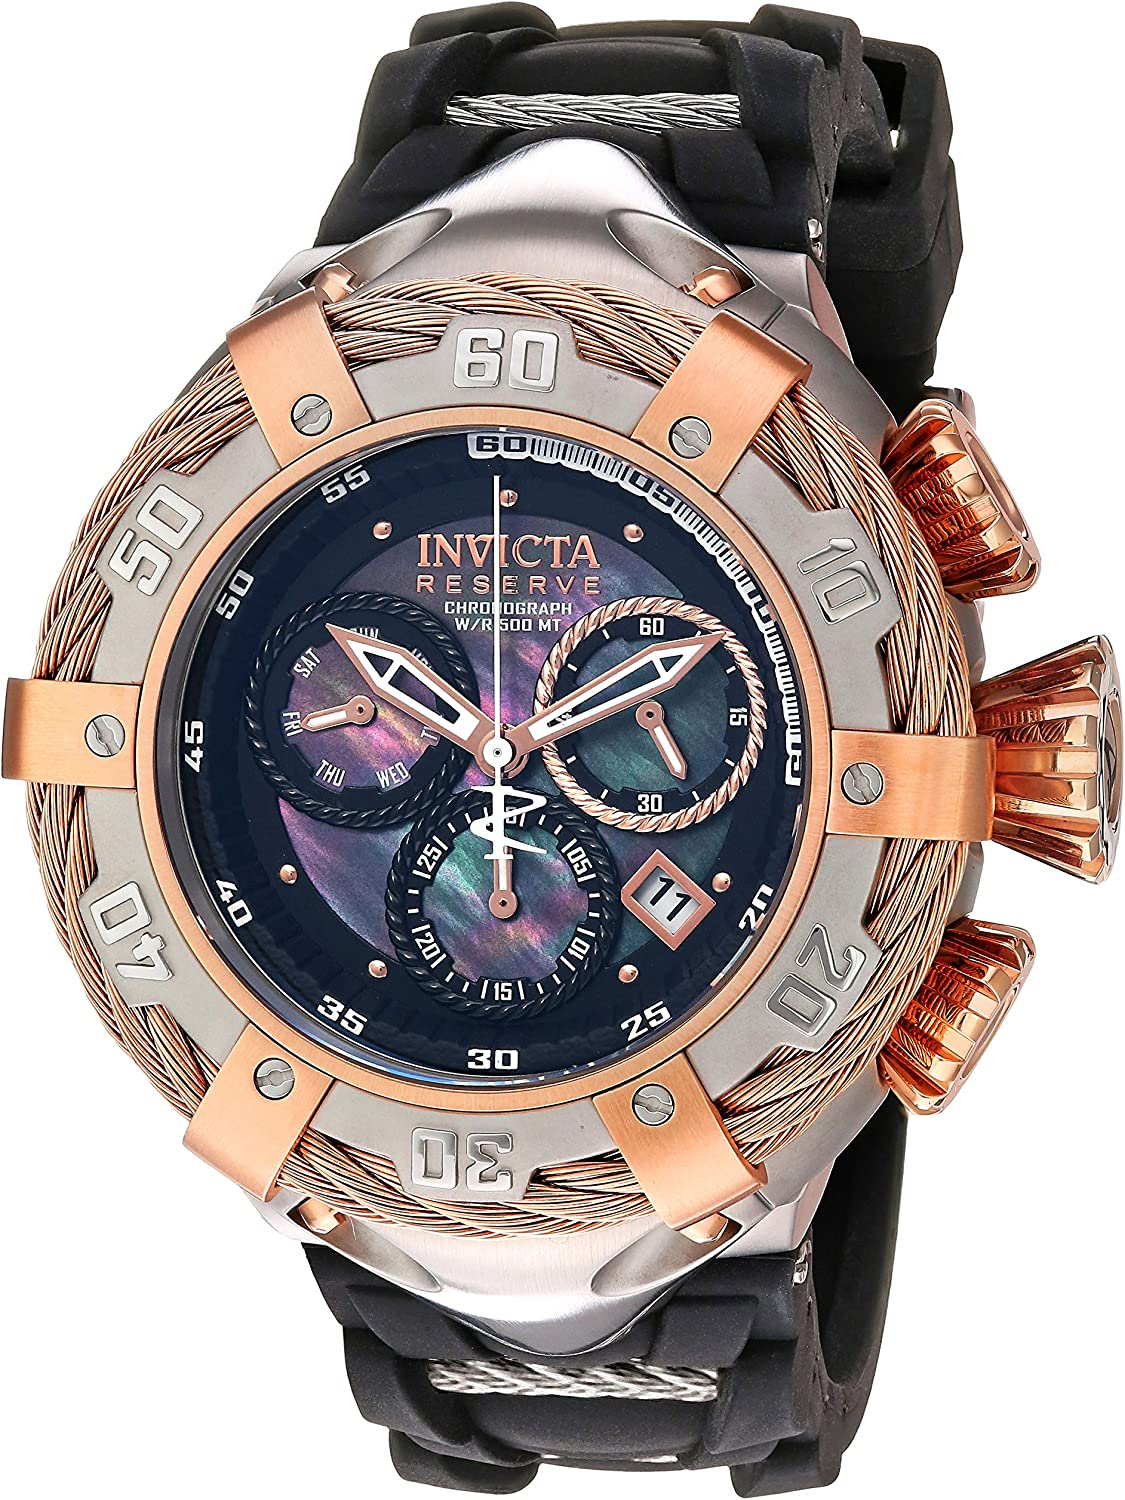 Invicta Men s Bolt Stainless Steel Swiss-Quartz Watch with Silicone Strap, Black, 30 Model 21363